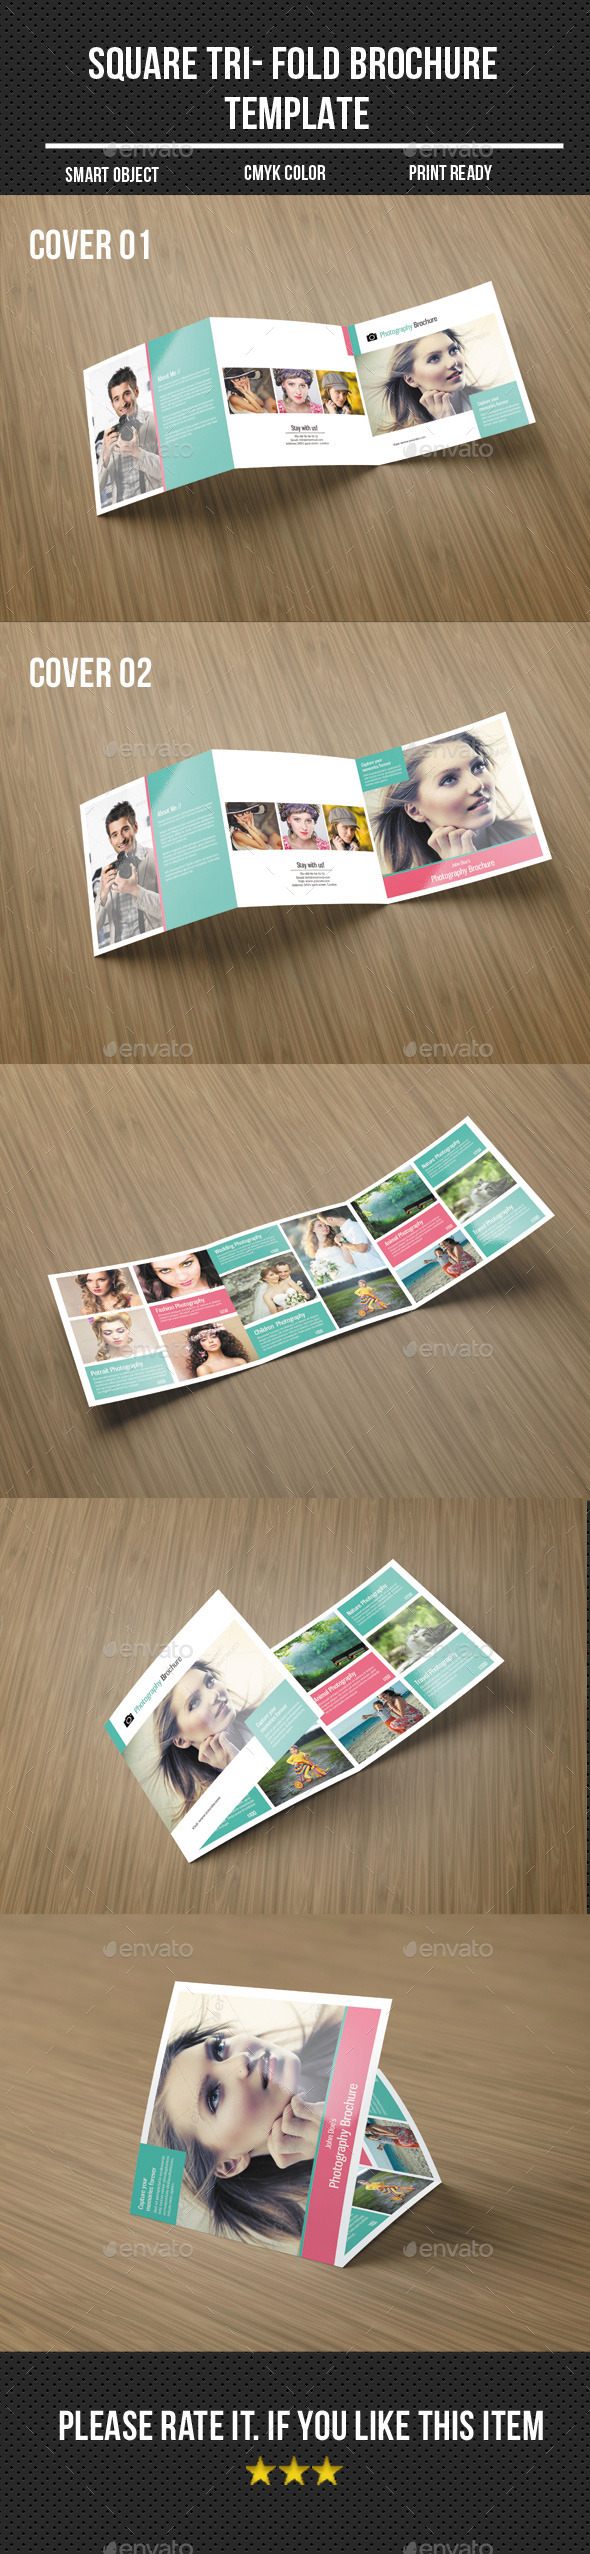 GraphicRiver Square Tri-Fold Photography Brochure 10890087